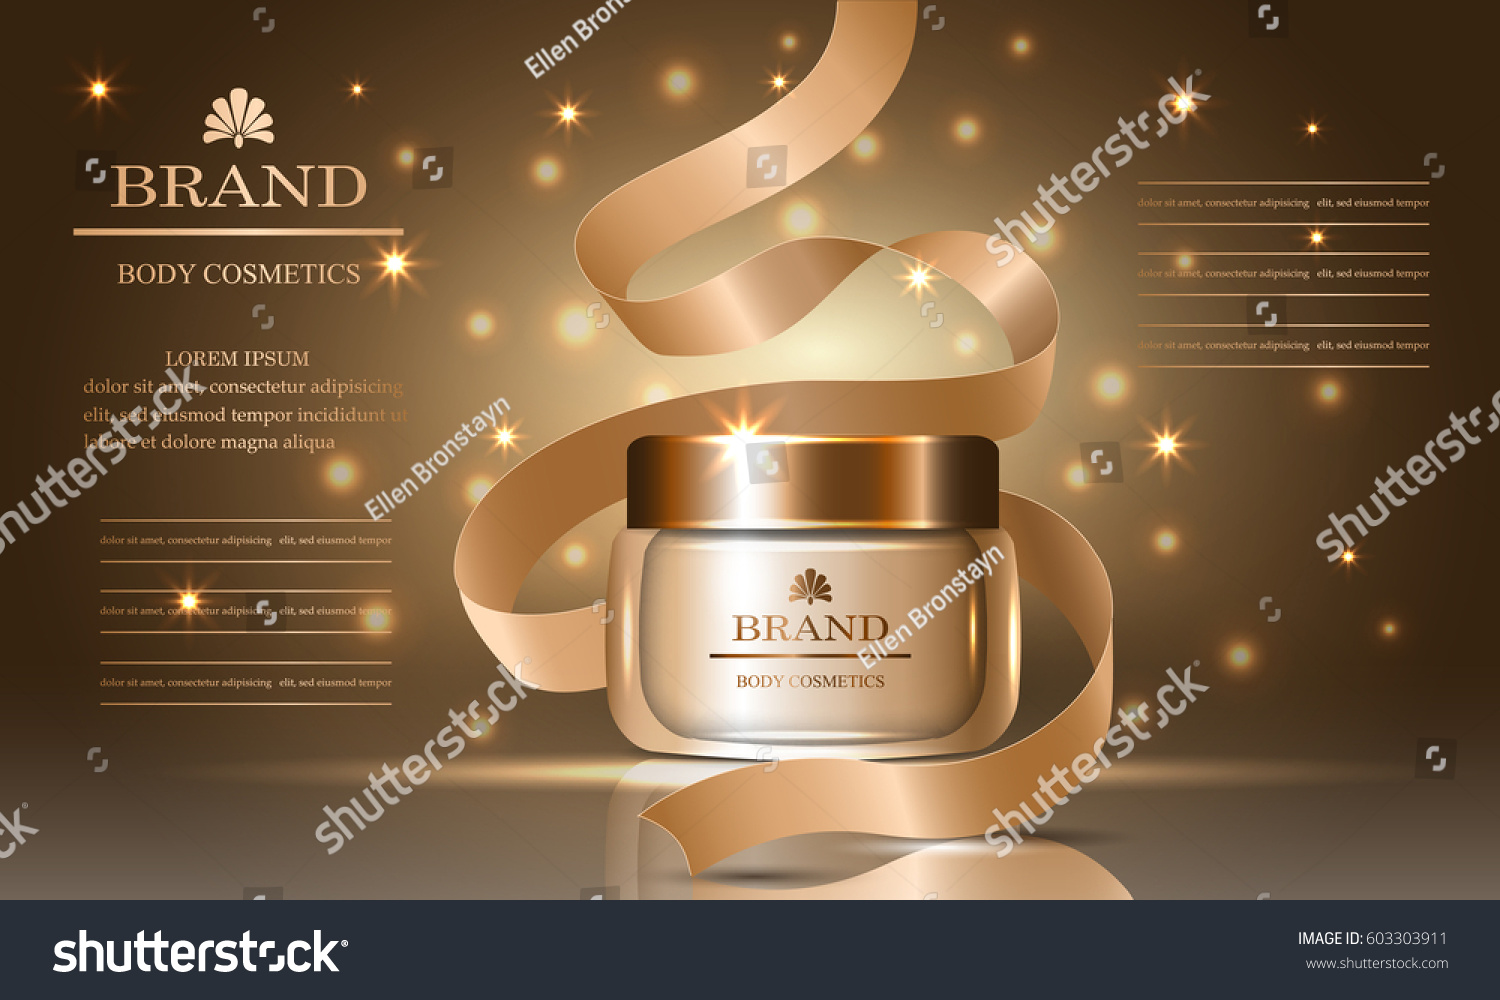 Cosmetics Beauty Body Series Ads Of Premium Collagen Oil Cream For Skin Care And Ribbon